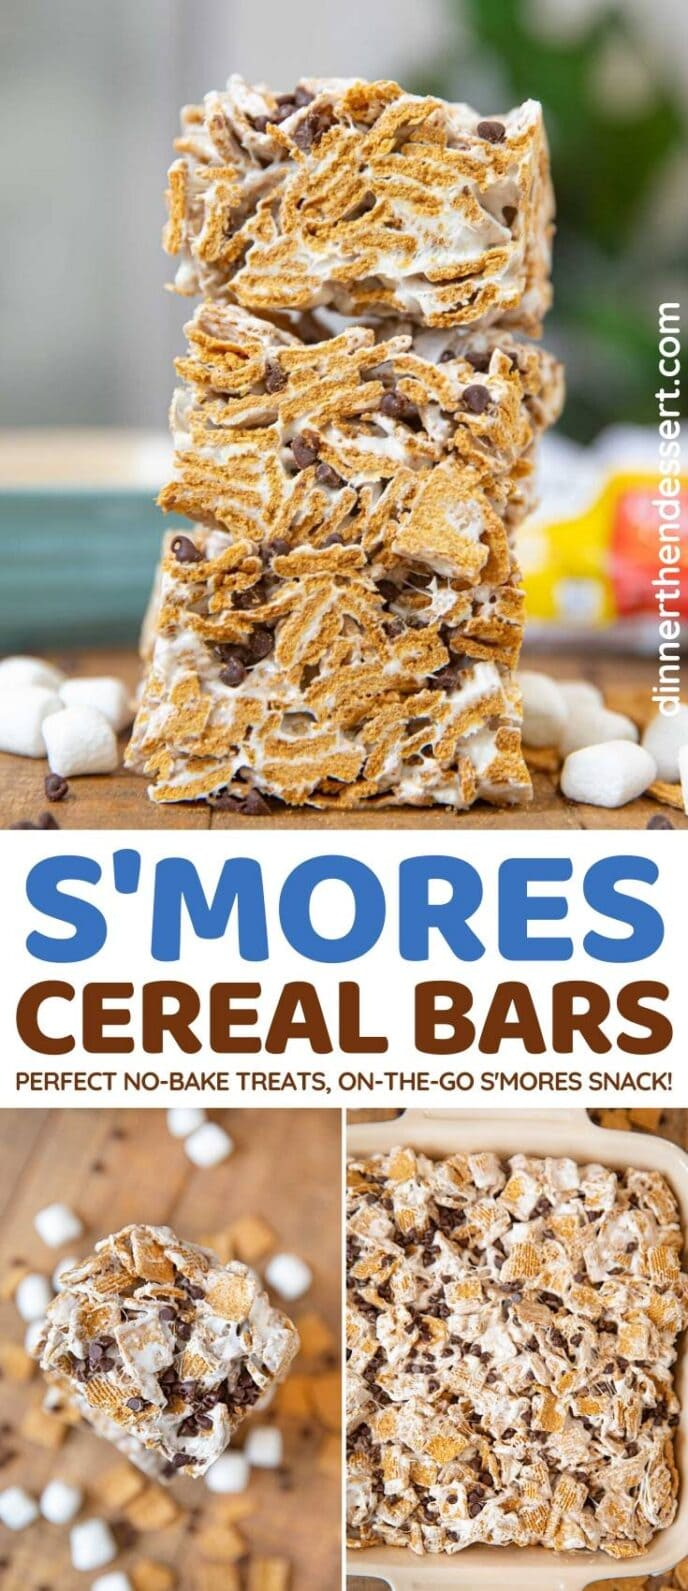 S'Mores Cereal Bars collage